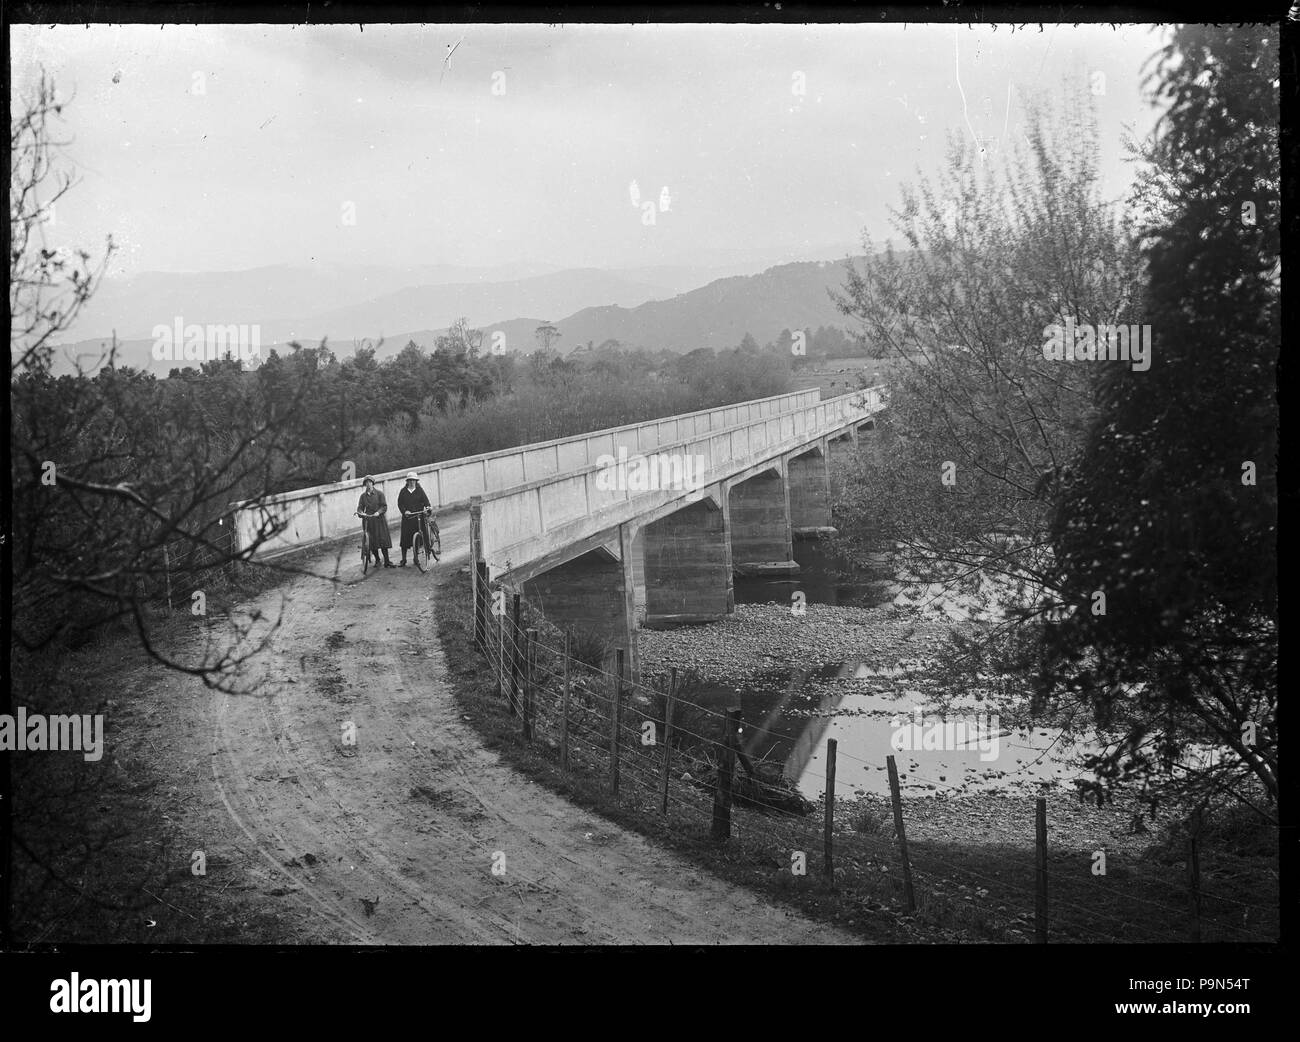 324 View of the Moonshine Bridge over the Hutt River. ATLIB 293495 - Stock Image